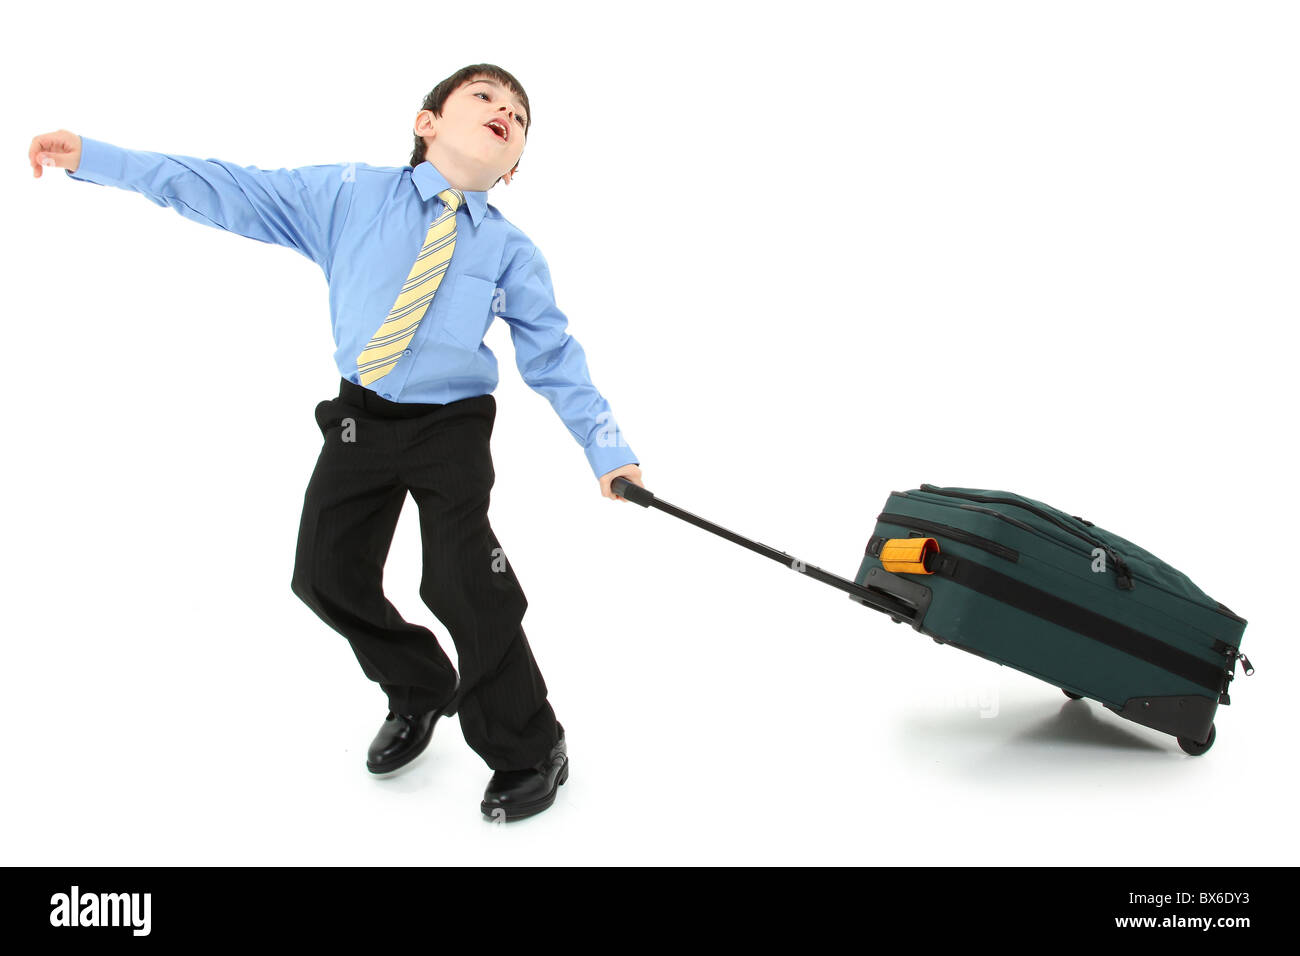 Adorable seven year old french american boy in suit struggling with large suitcase over white background. - Stock Image